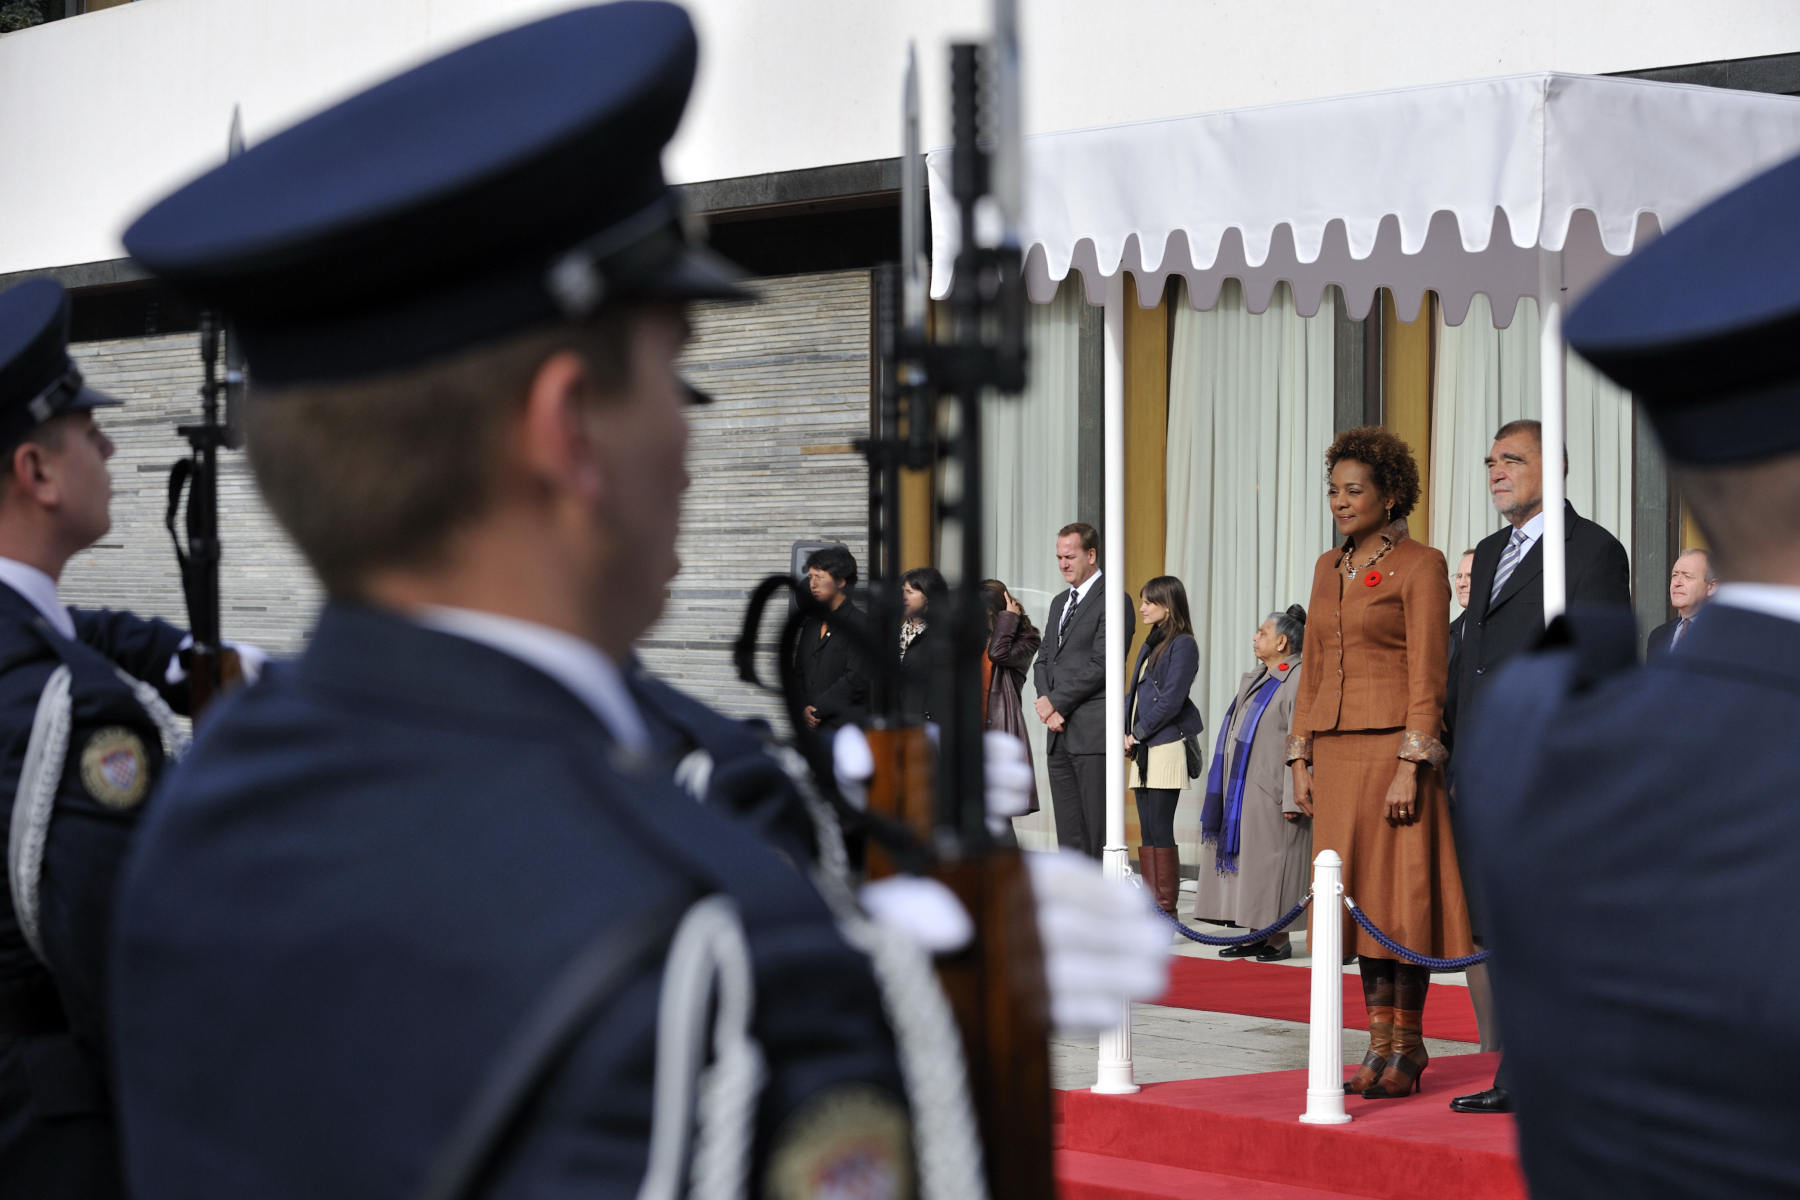 Her Excellency was officially welcomed to the Republic of Croatia during a ceremony with military honours.